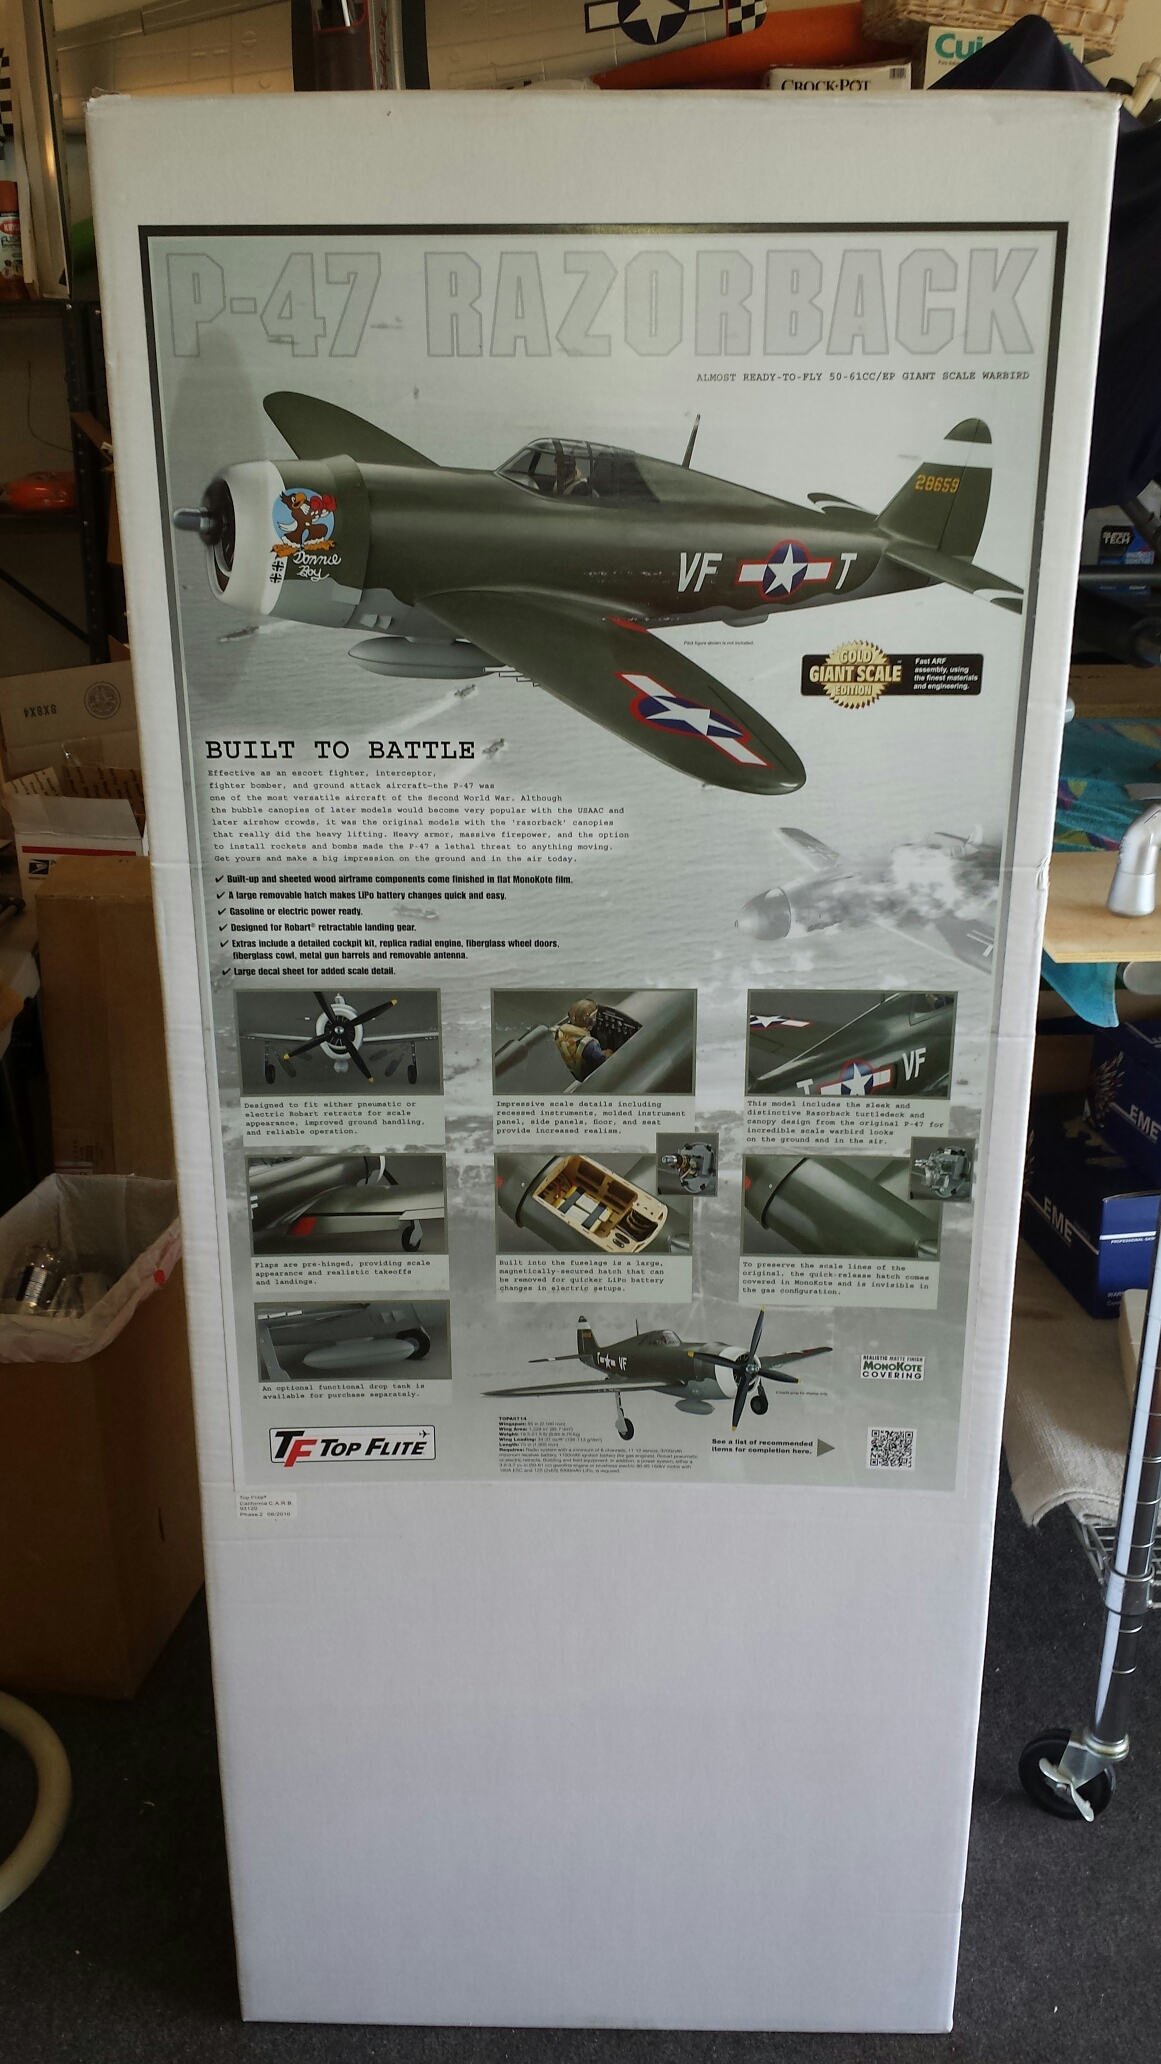 Topflite Giant P-47 Club - Page 23 - RCU Forums